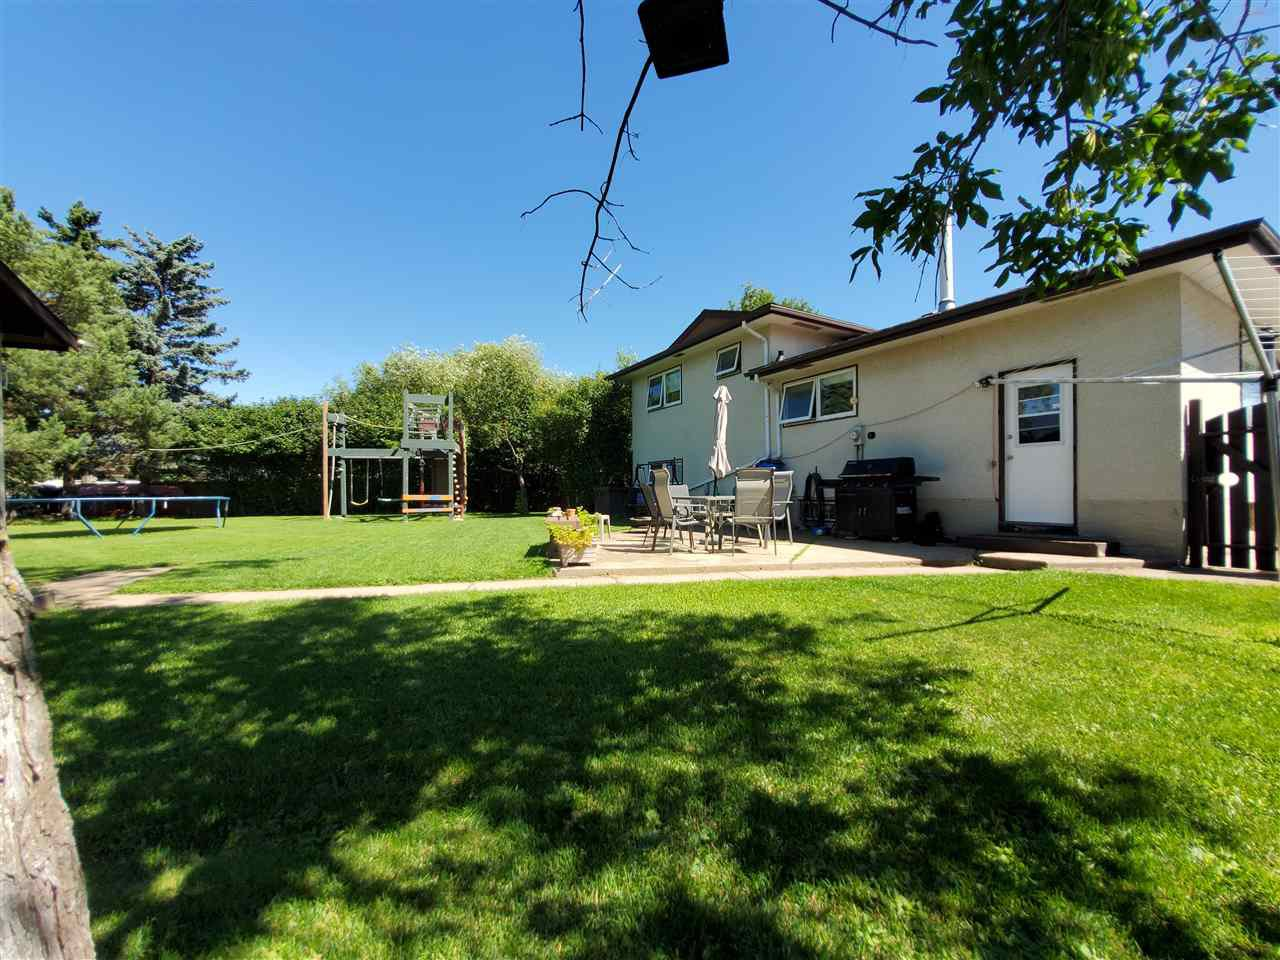 Photo 38: Photos: 125 Spruce Crescent: Wetaskiwin House for sale : MLS®# E4207728